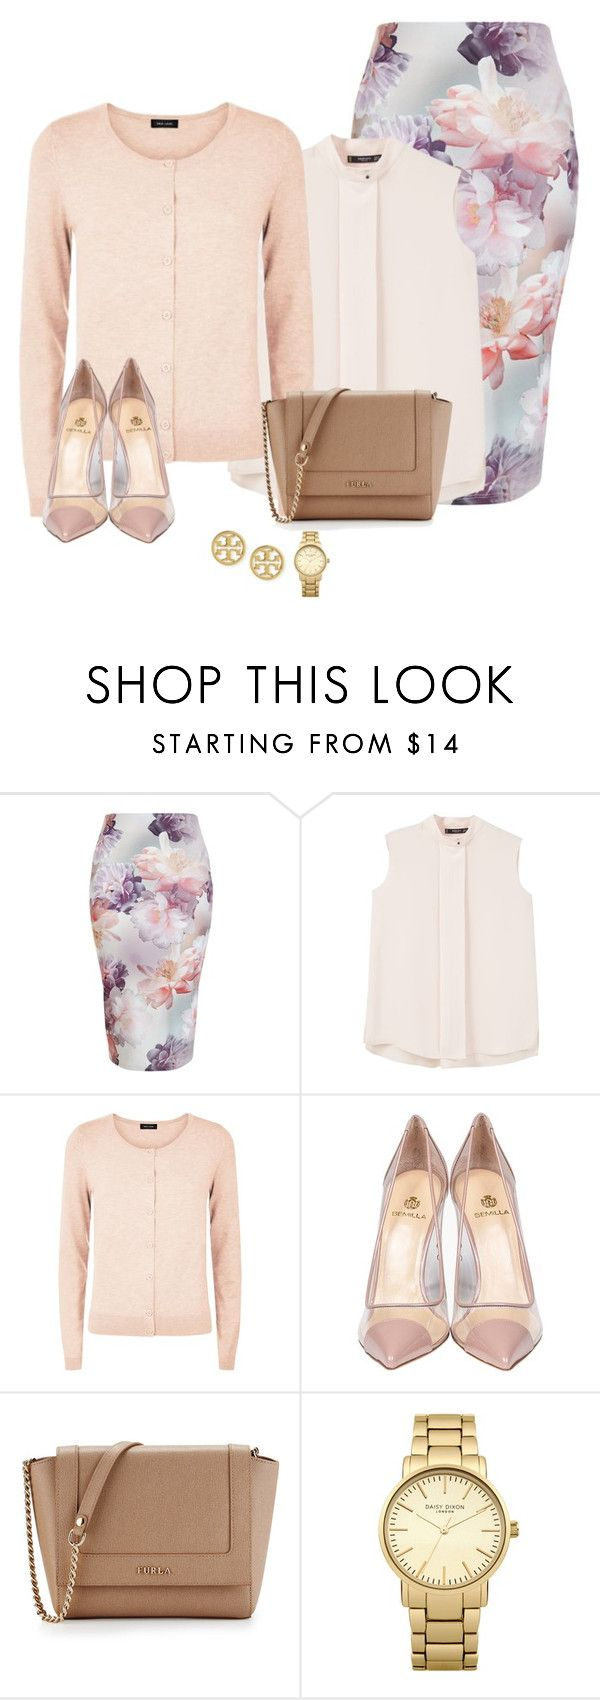 """Spring delicates"" by love-and-happiness ❤ liked on Polyvore featuring New Look, MANGO, Semilla, Furla, Topshop and Tory Burch"